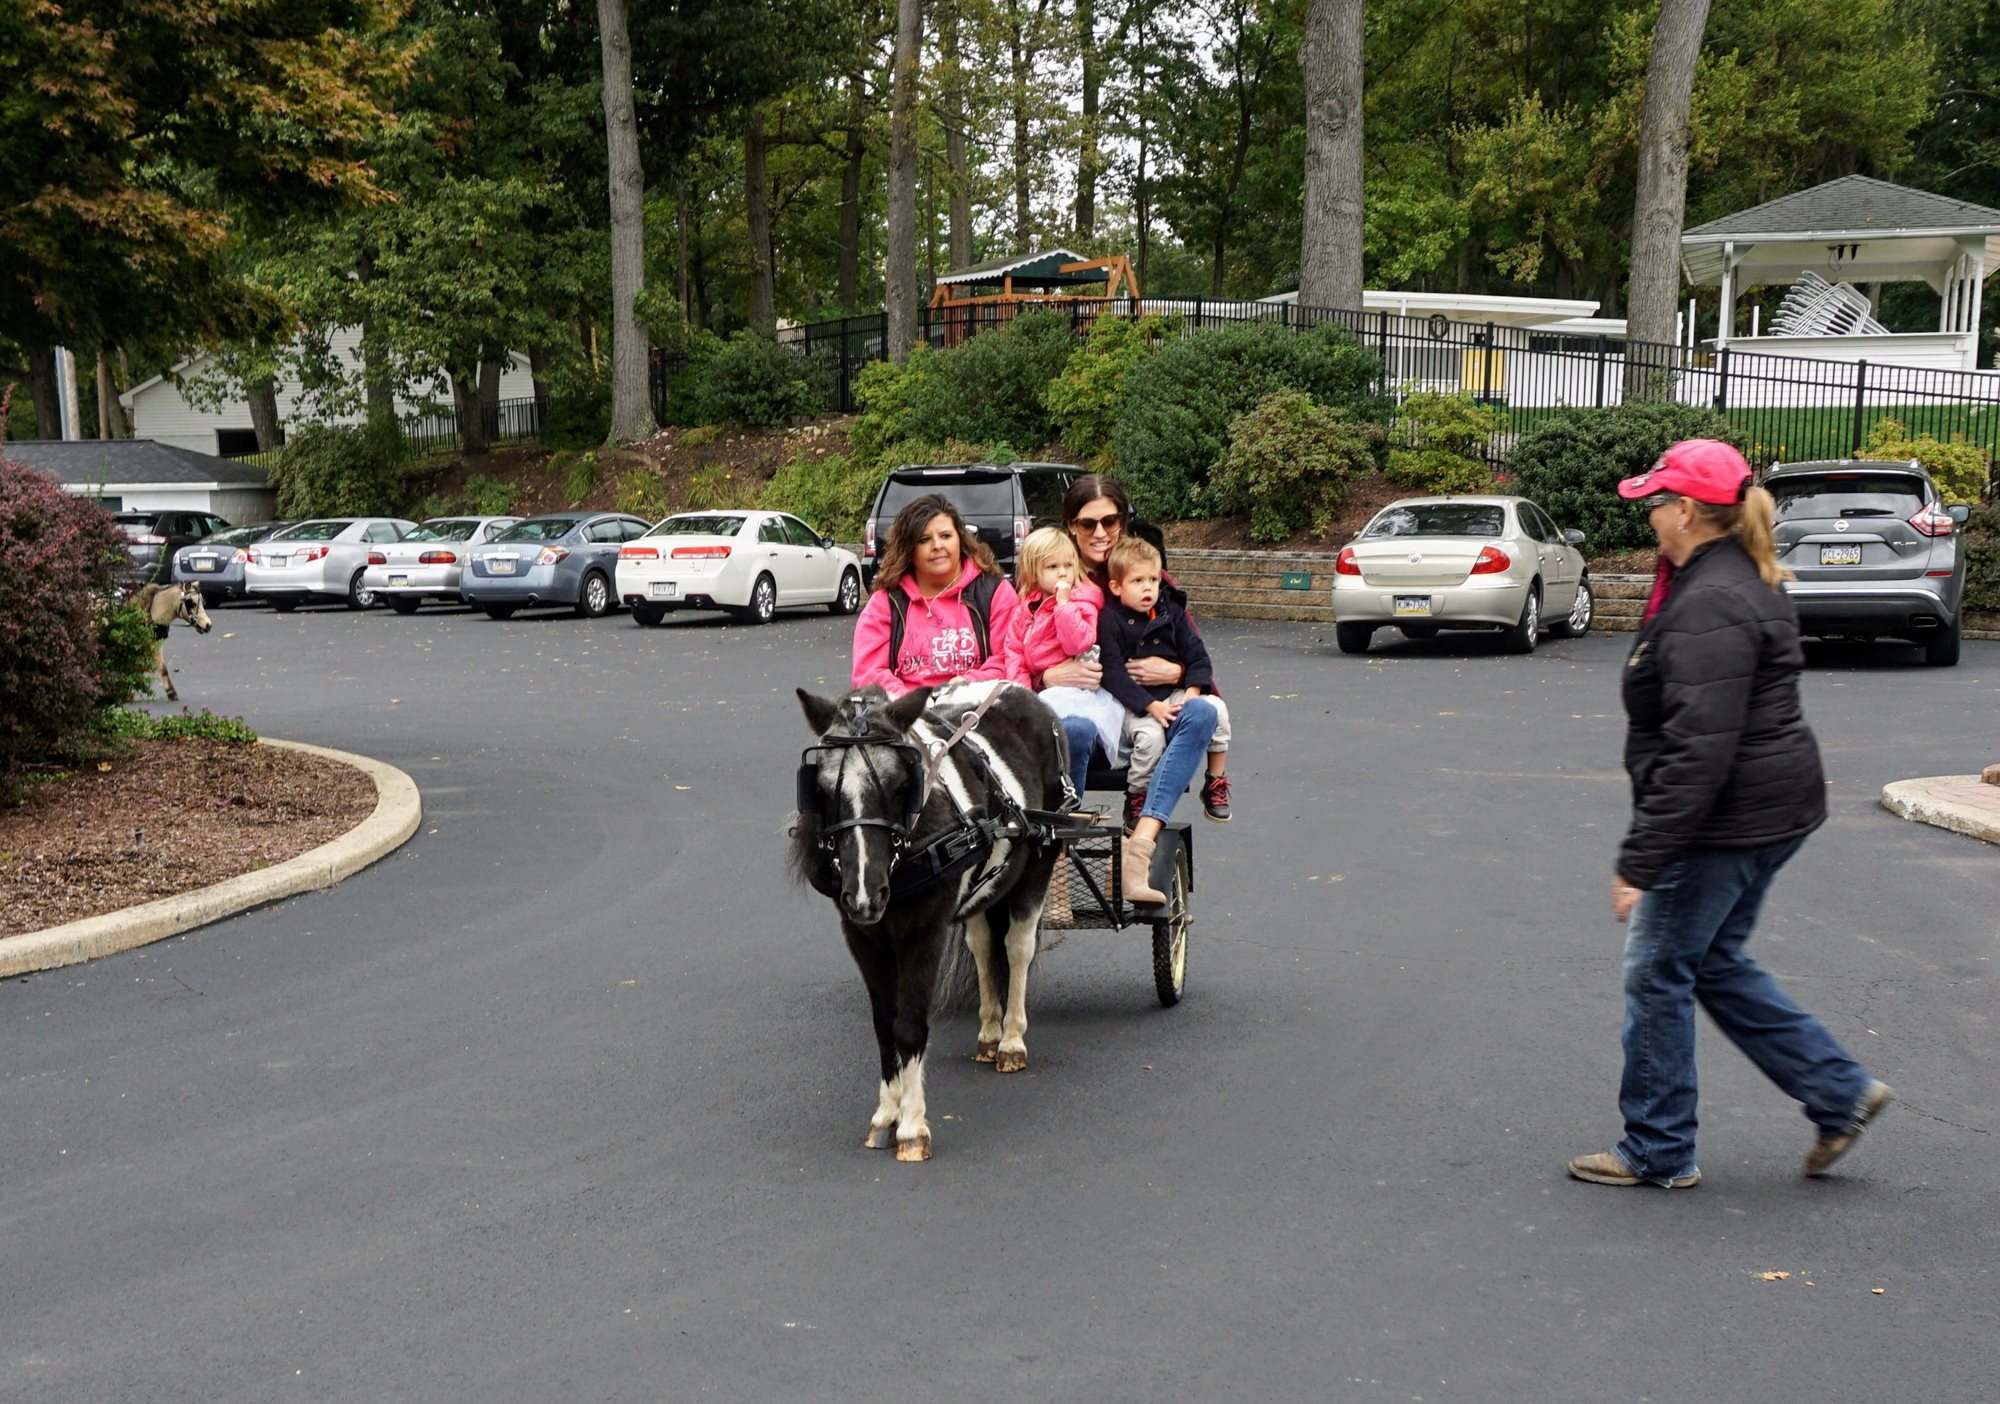 15_Pumpkins_and_Pony_Rides_10_14_18_002